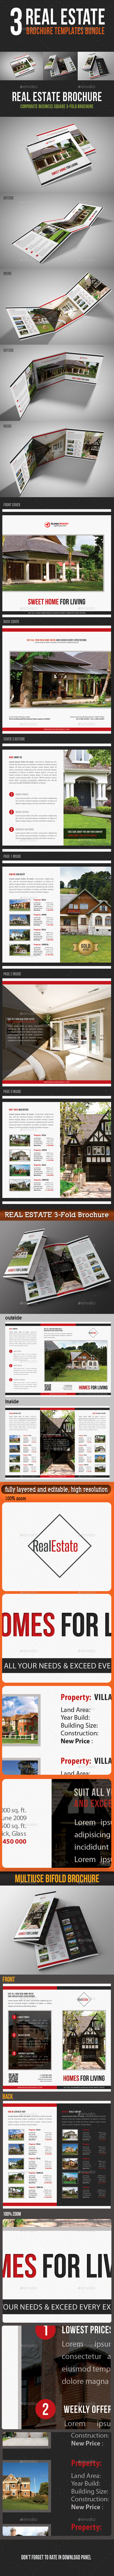 GraphicRiver 3 in 1 Real Estate Brochure Bundle 11787193